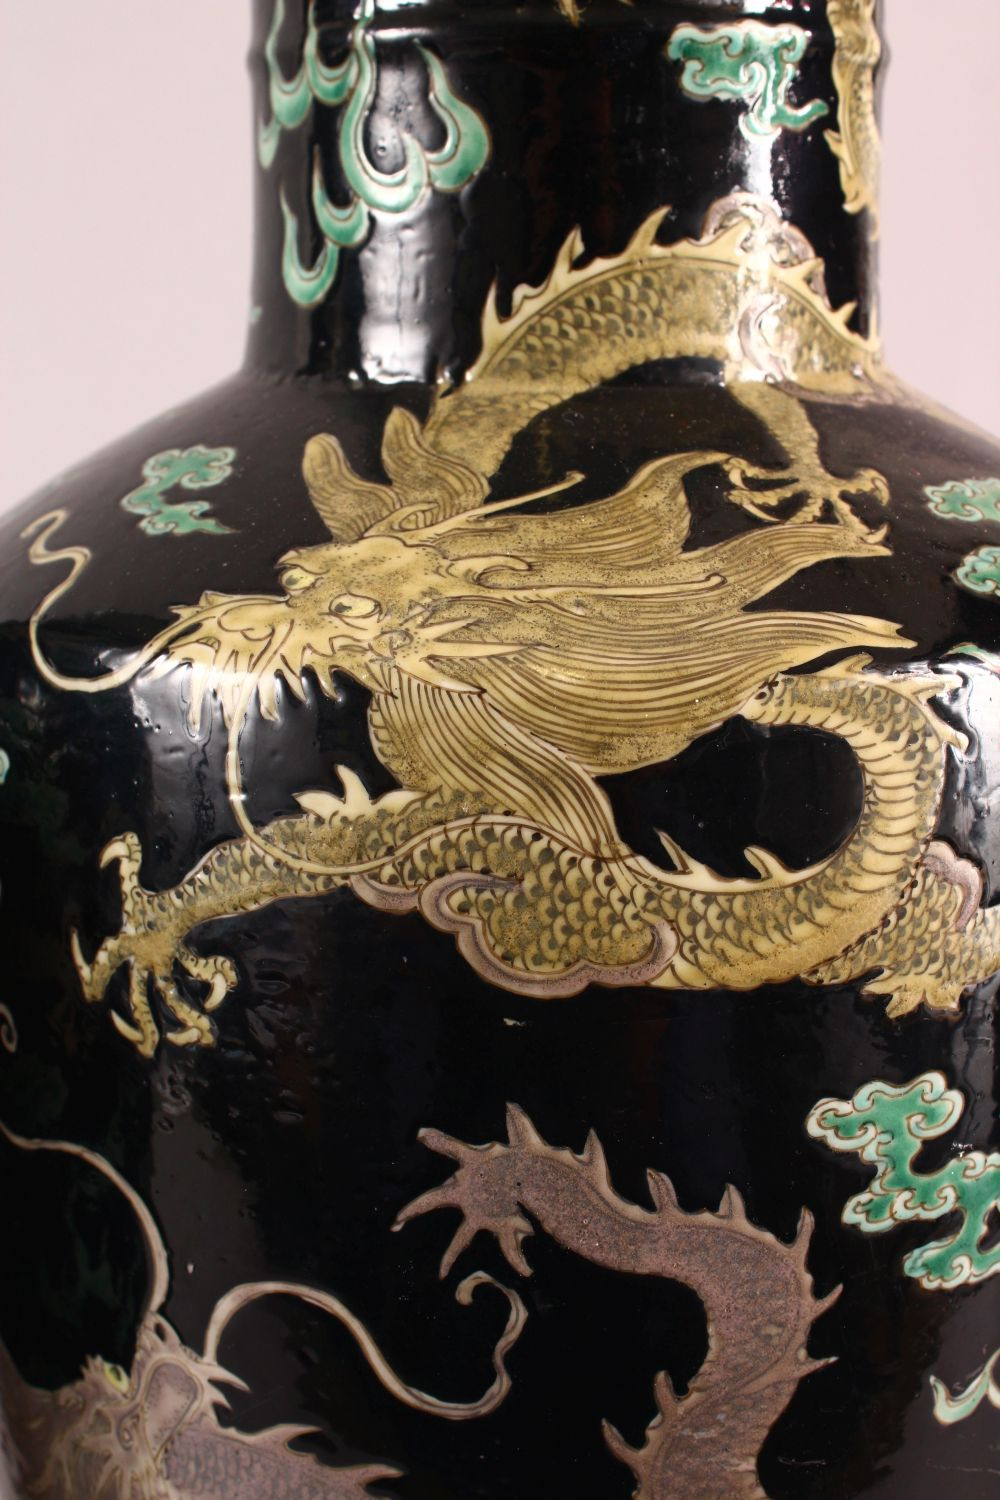 A LARGE PAIR OF CHINESE FAMILLE NOIR PORCELAIN DRAGON VASES, each vase with a black ground depicting - Image 6 of 13